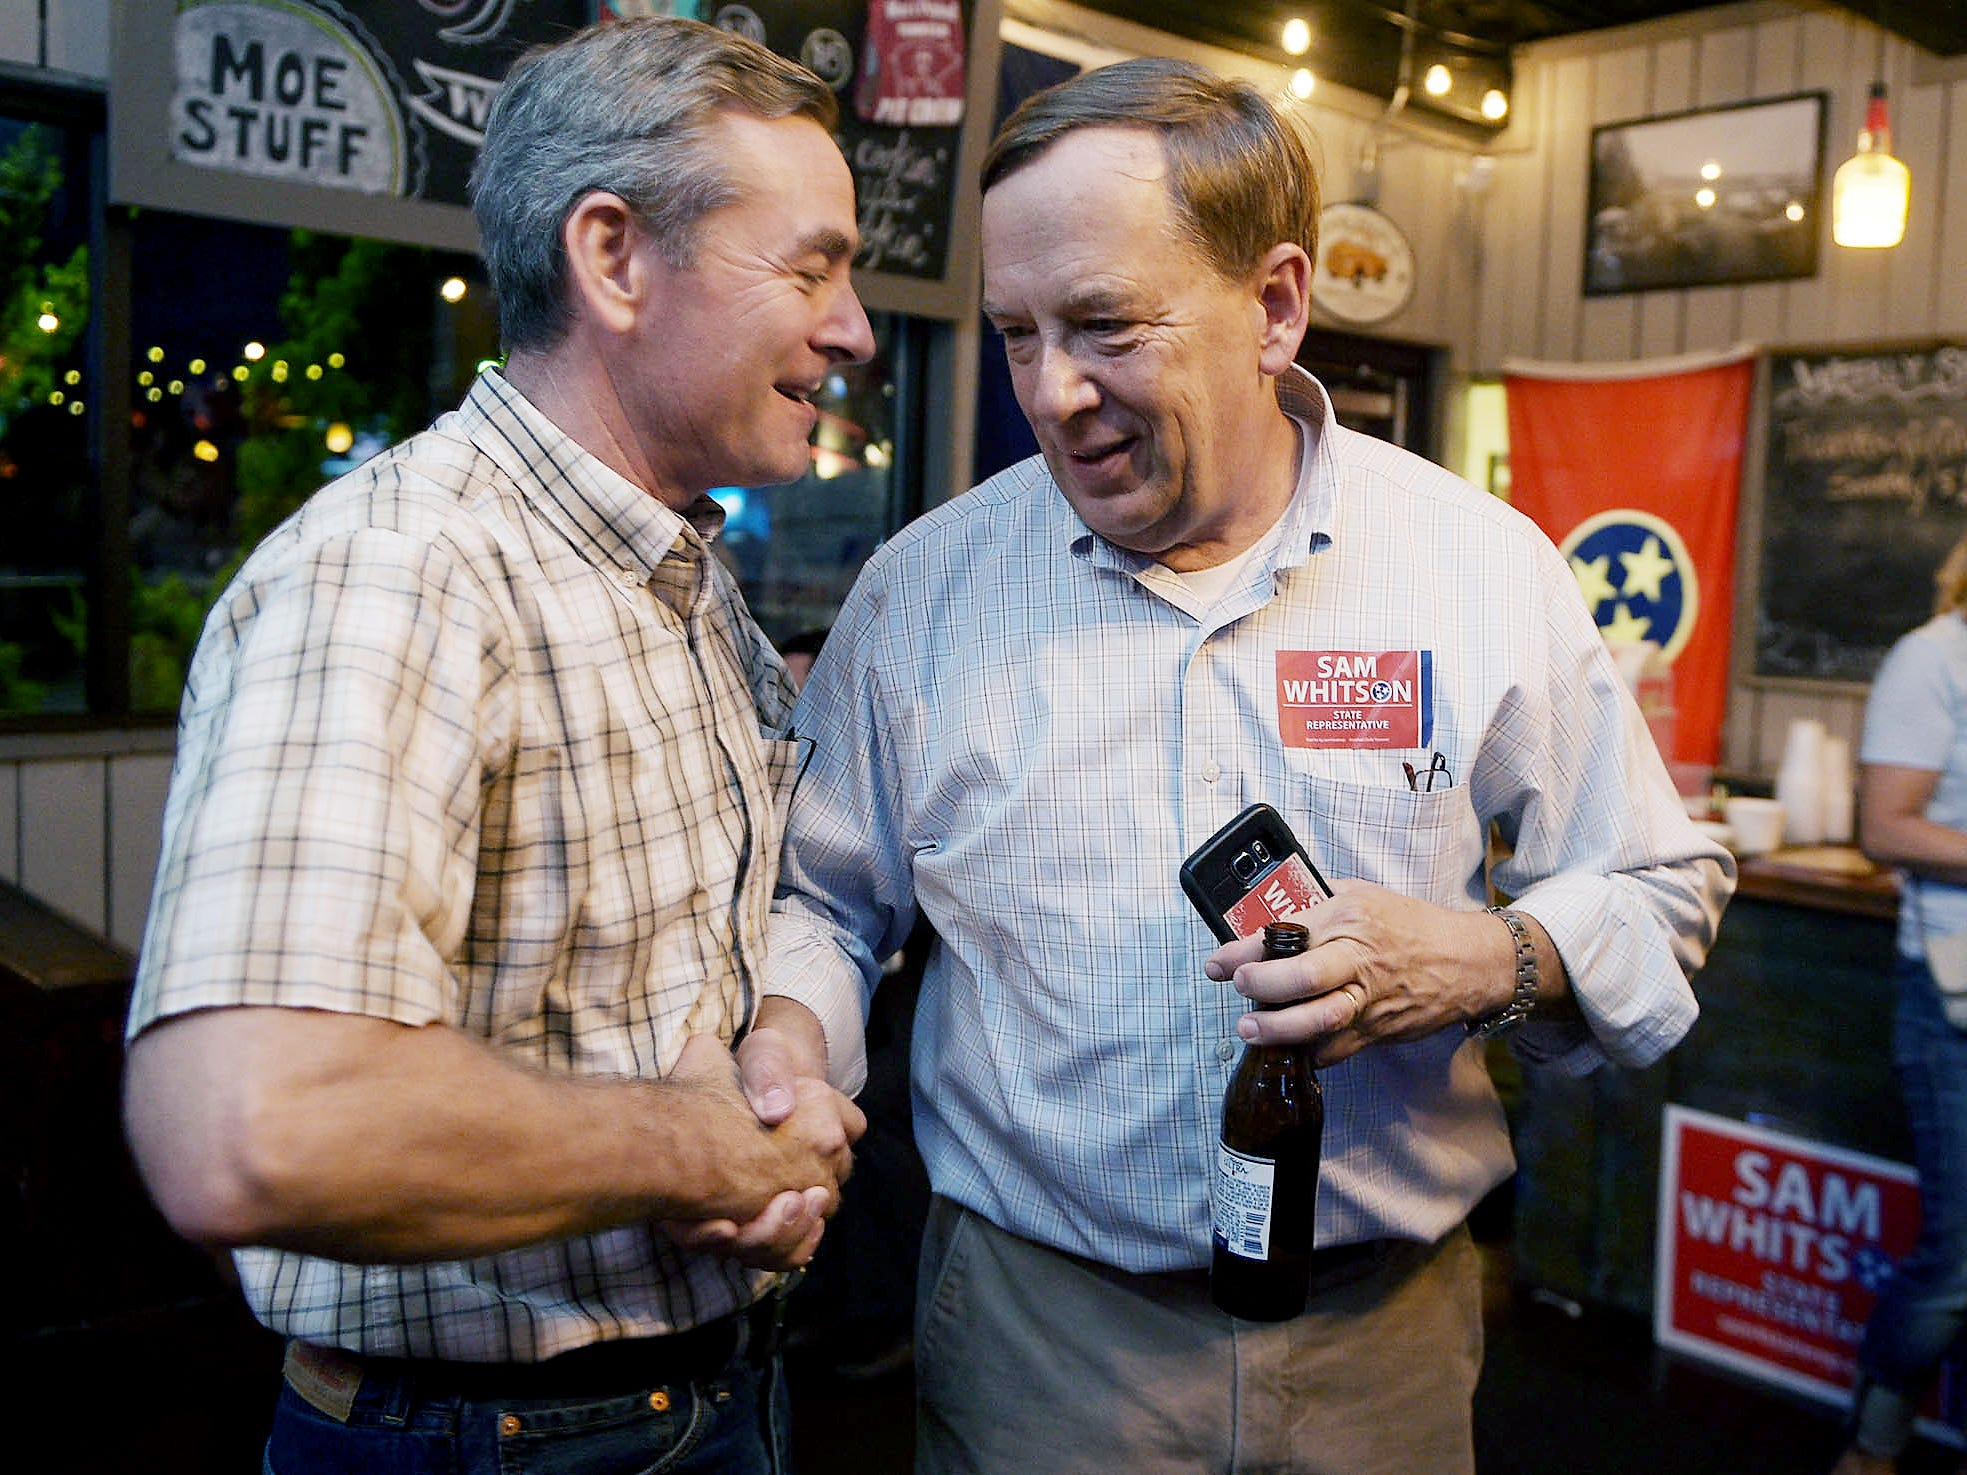 64th District House Republican Glen Casada, left, congratulates 65th District House Republican candidate Sam Whitson on election night in Franklin on Aug. 4, 2016.